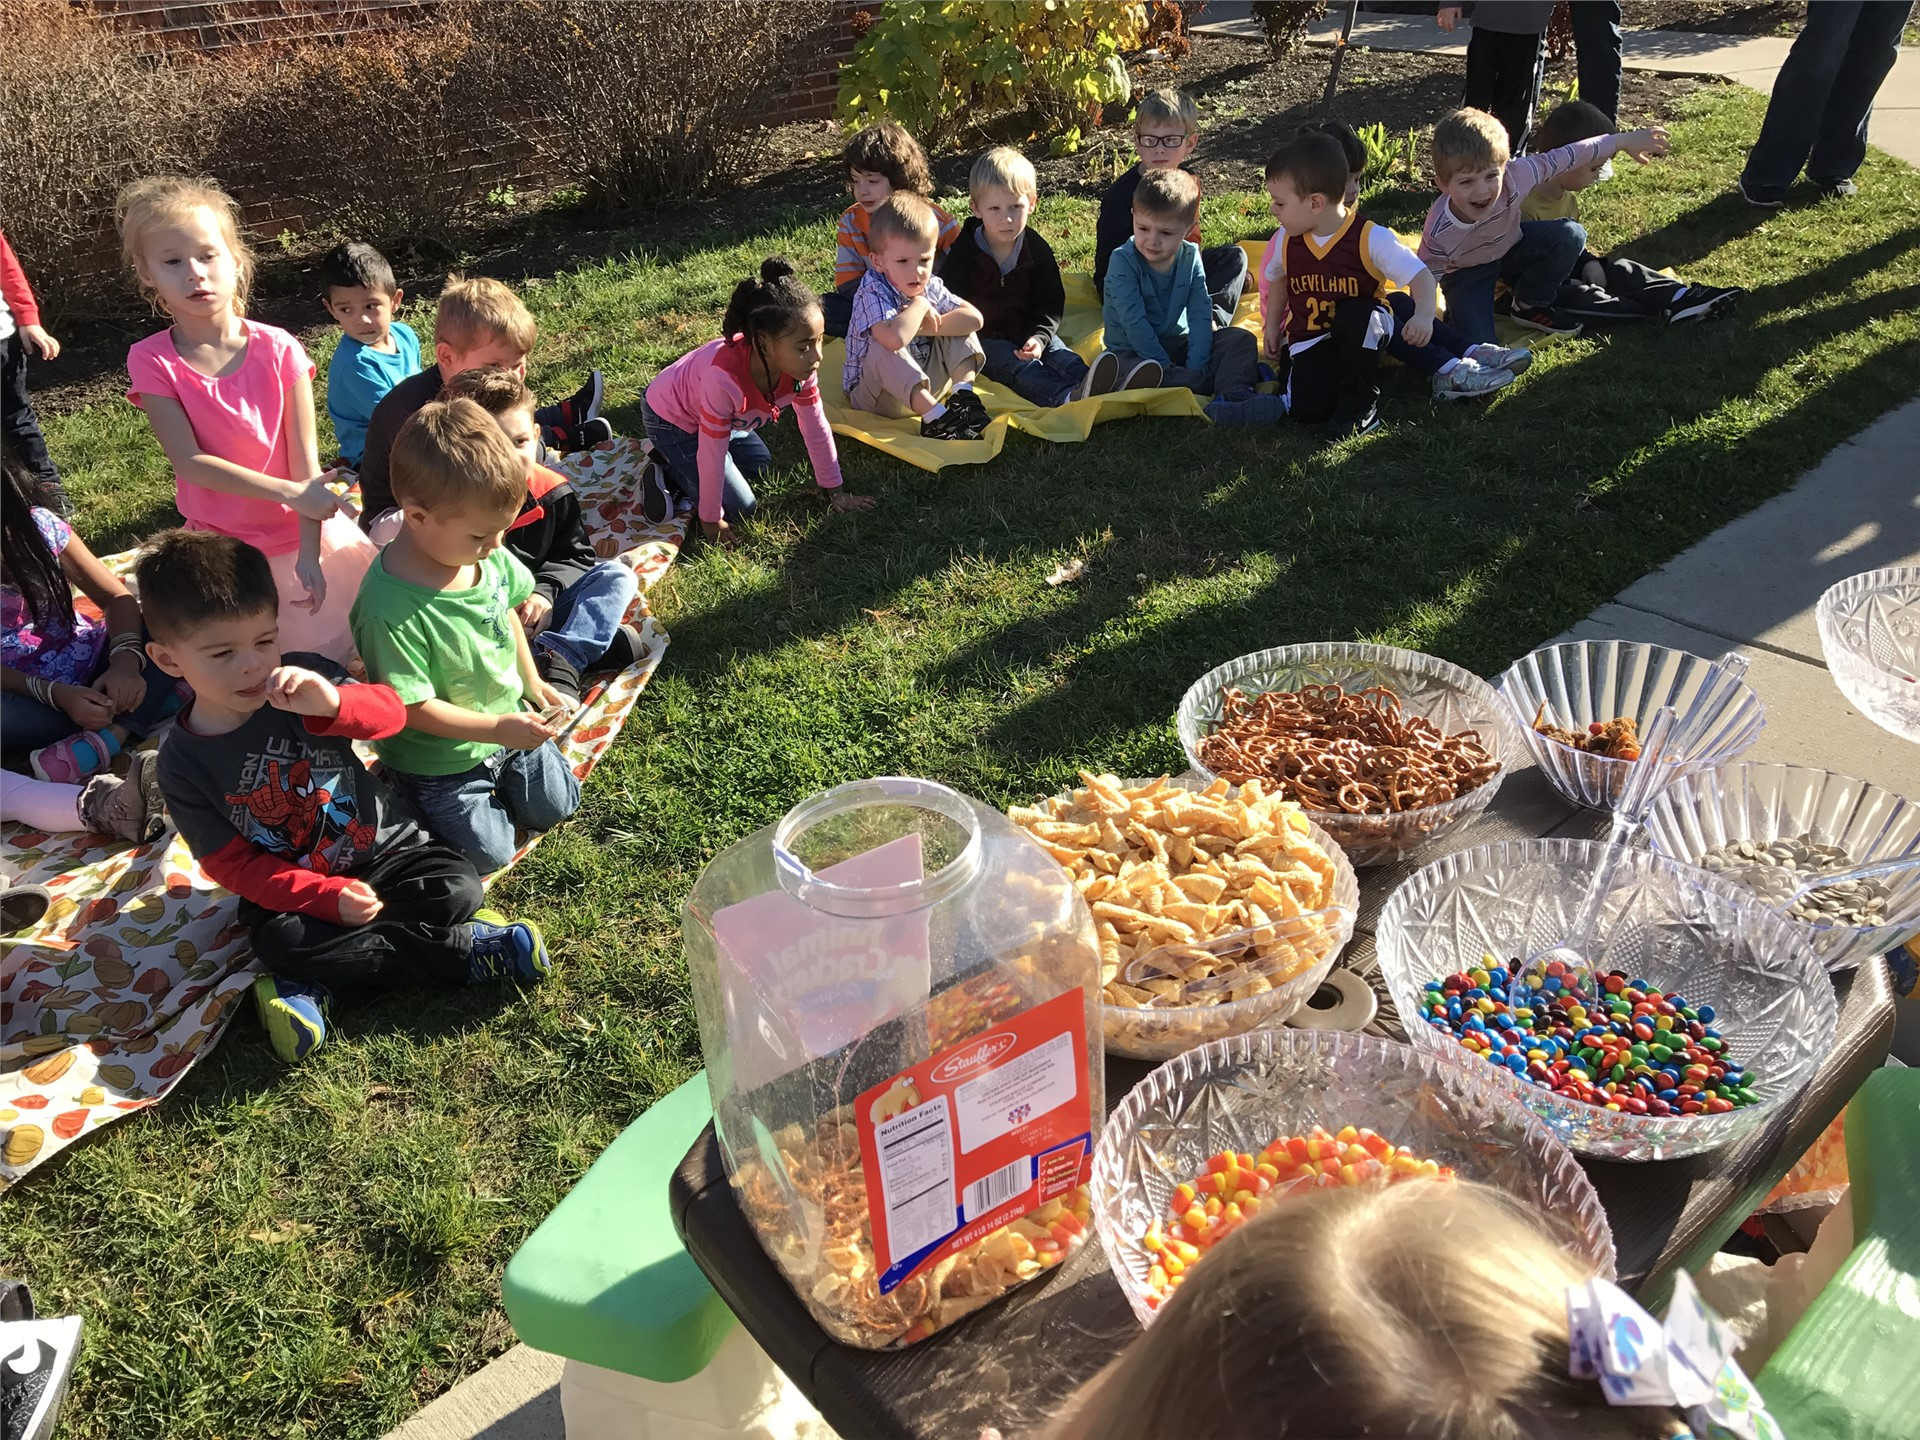 Morning preschool students prepare friendship mix